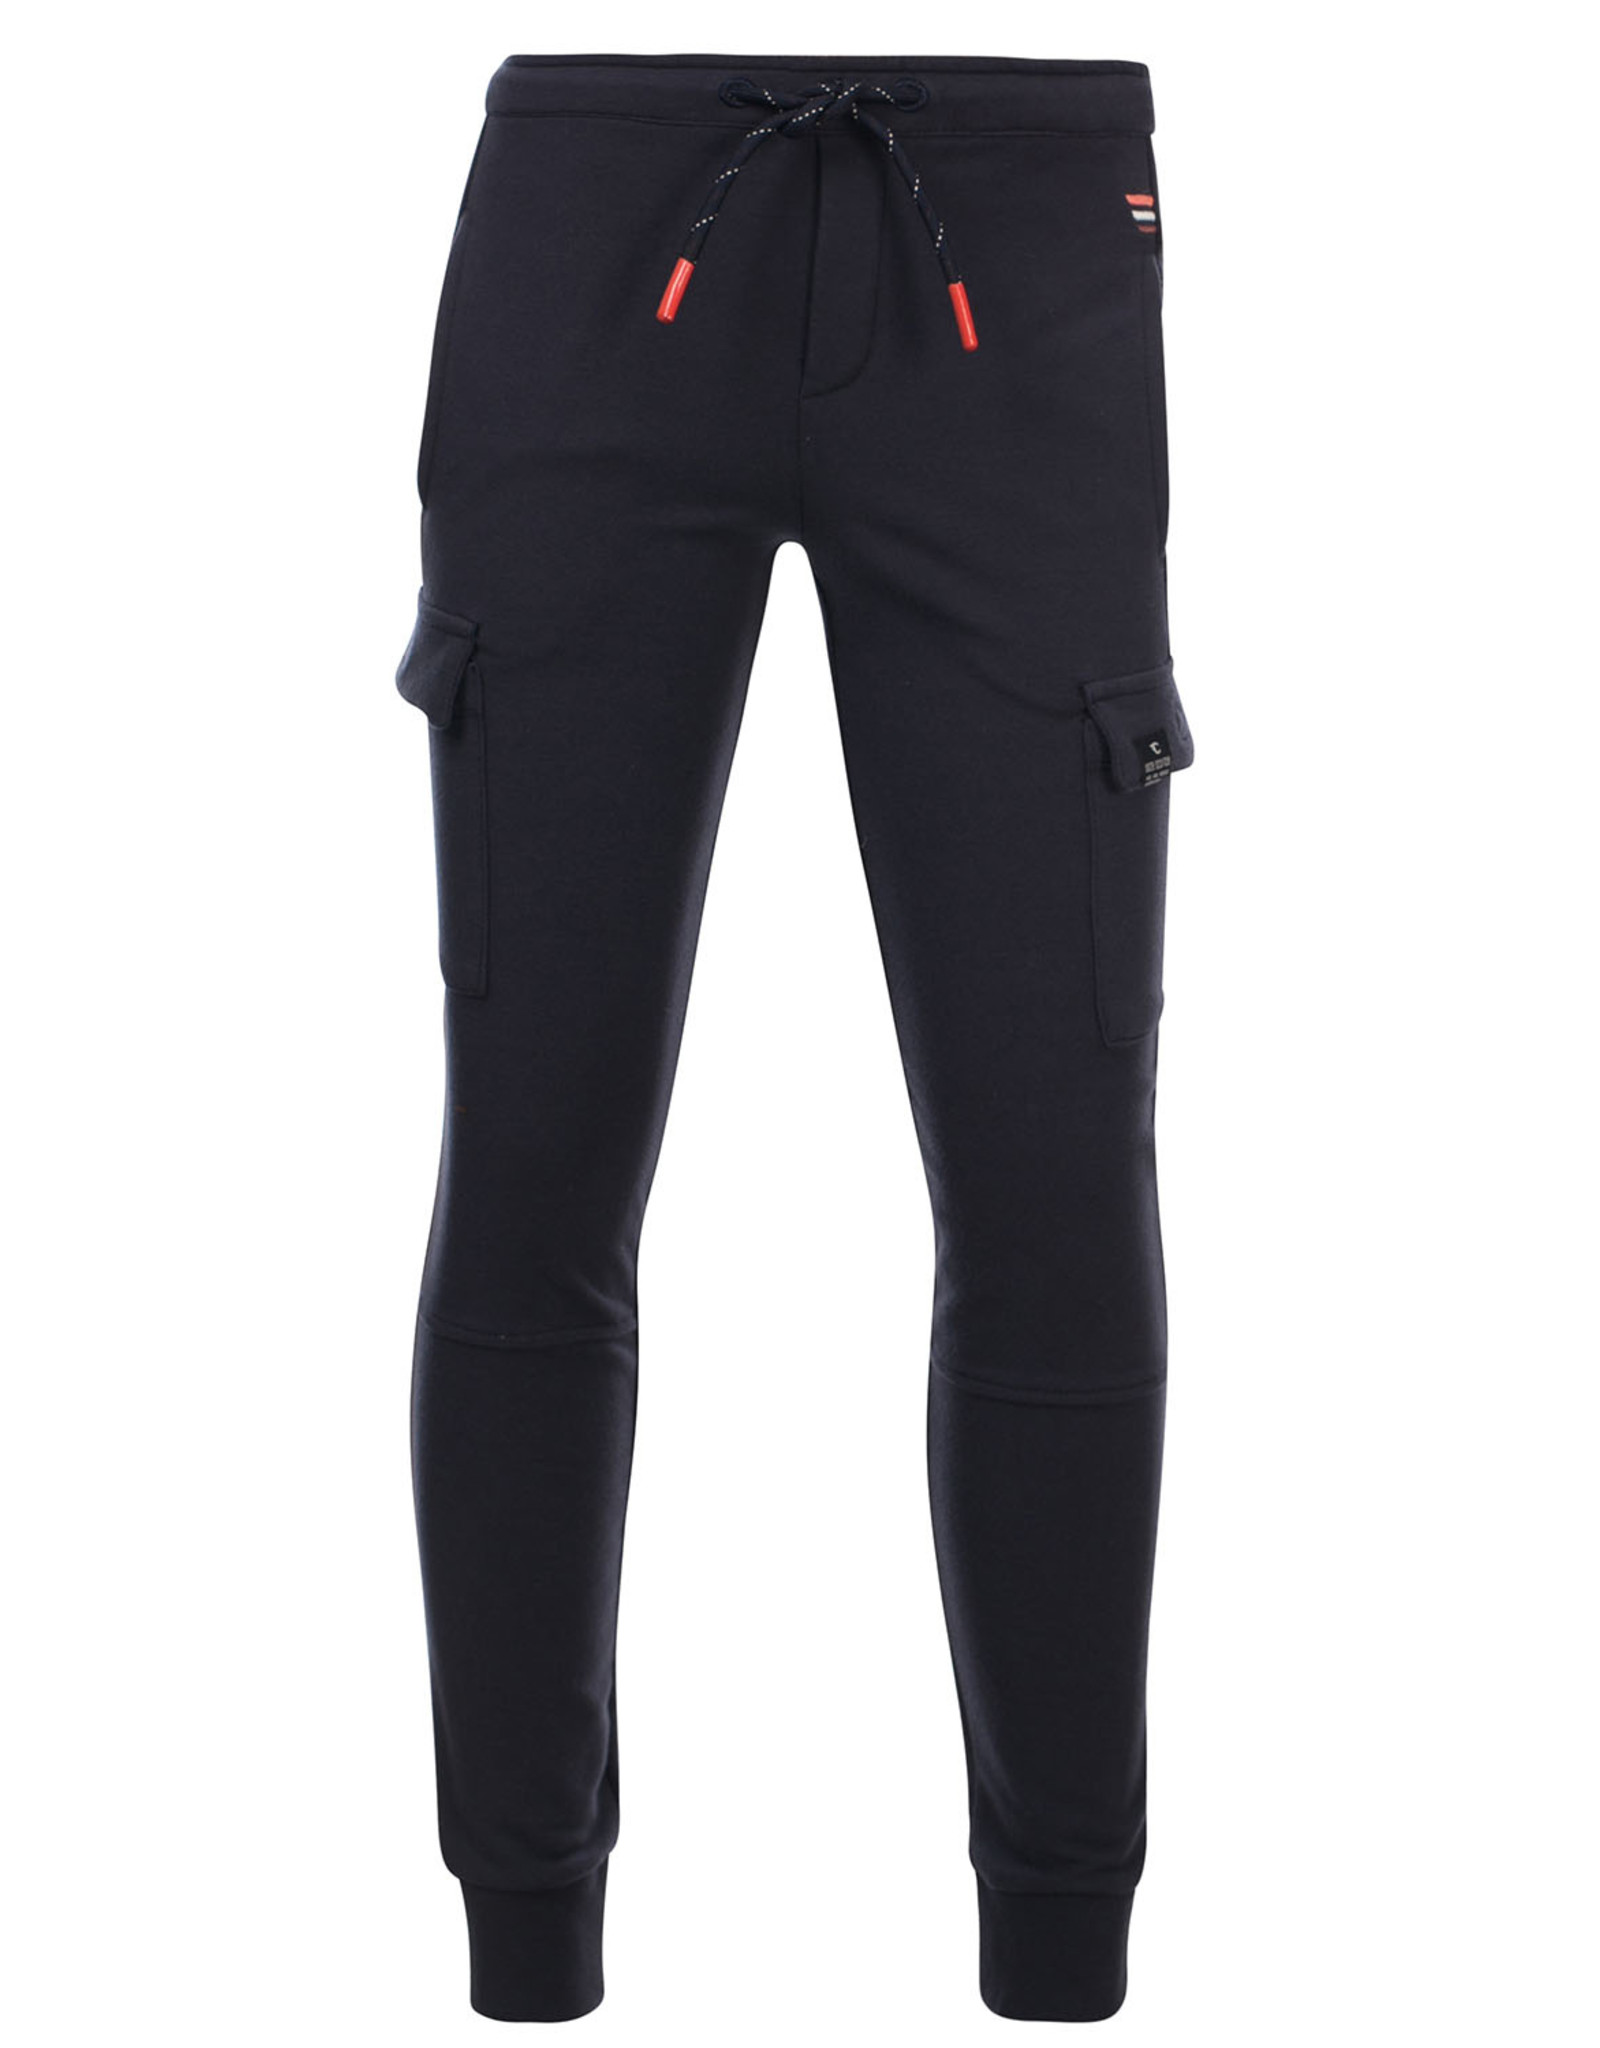 Common Heroes BUSTER sweat pants with pockets STONE